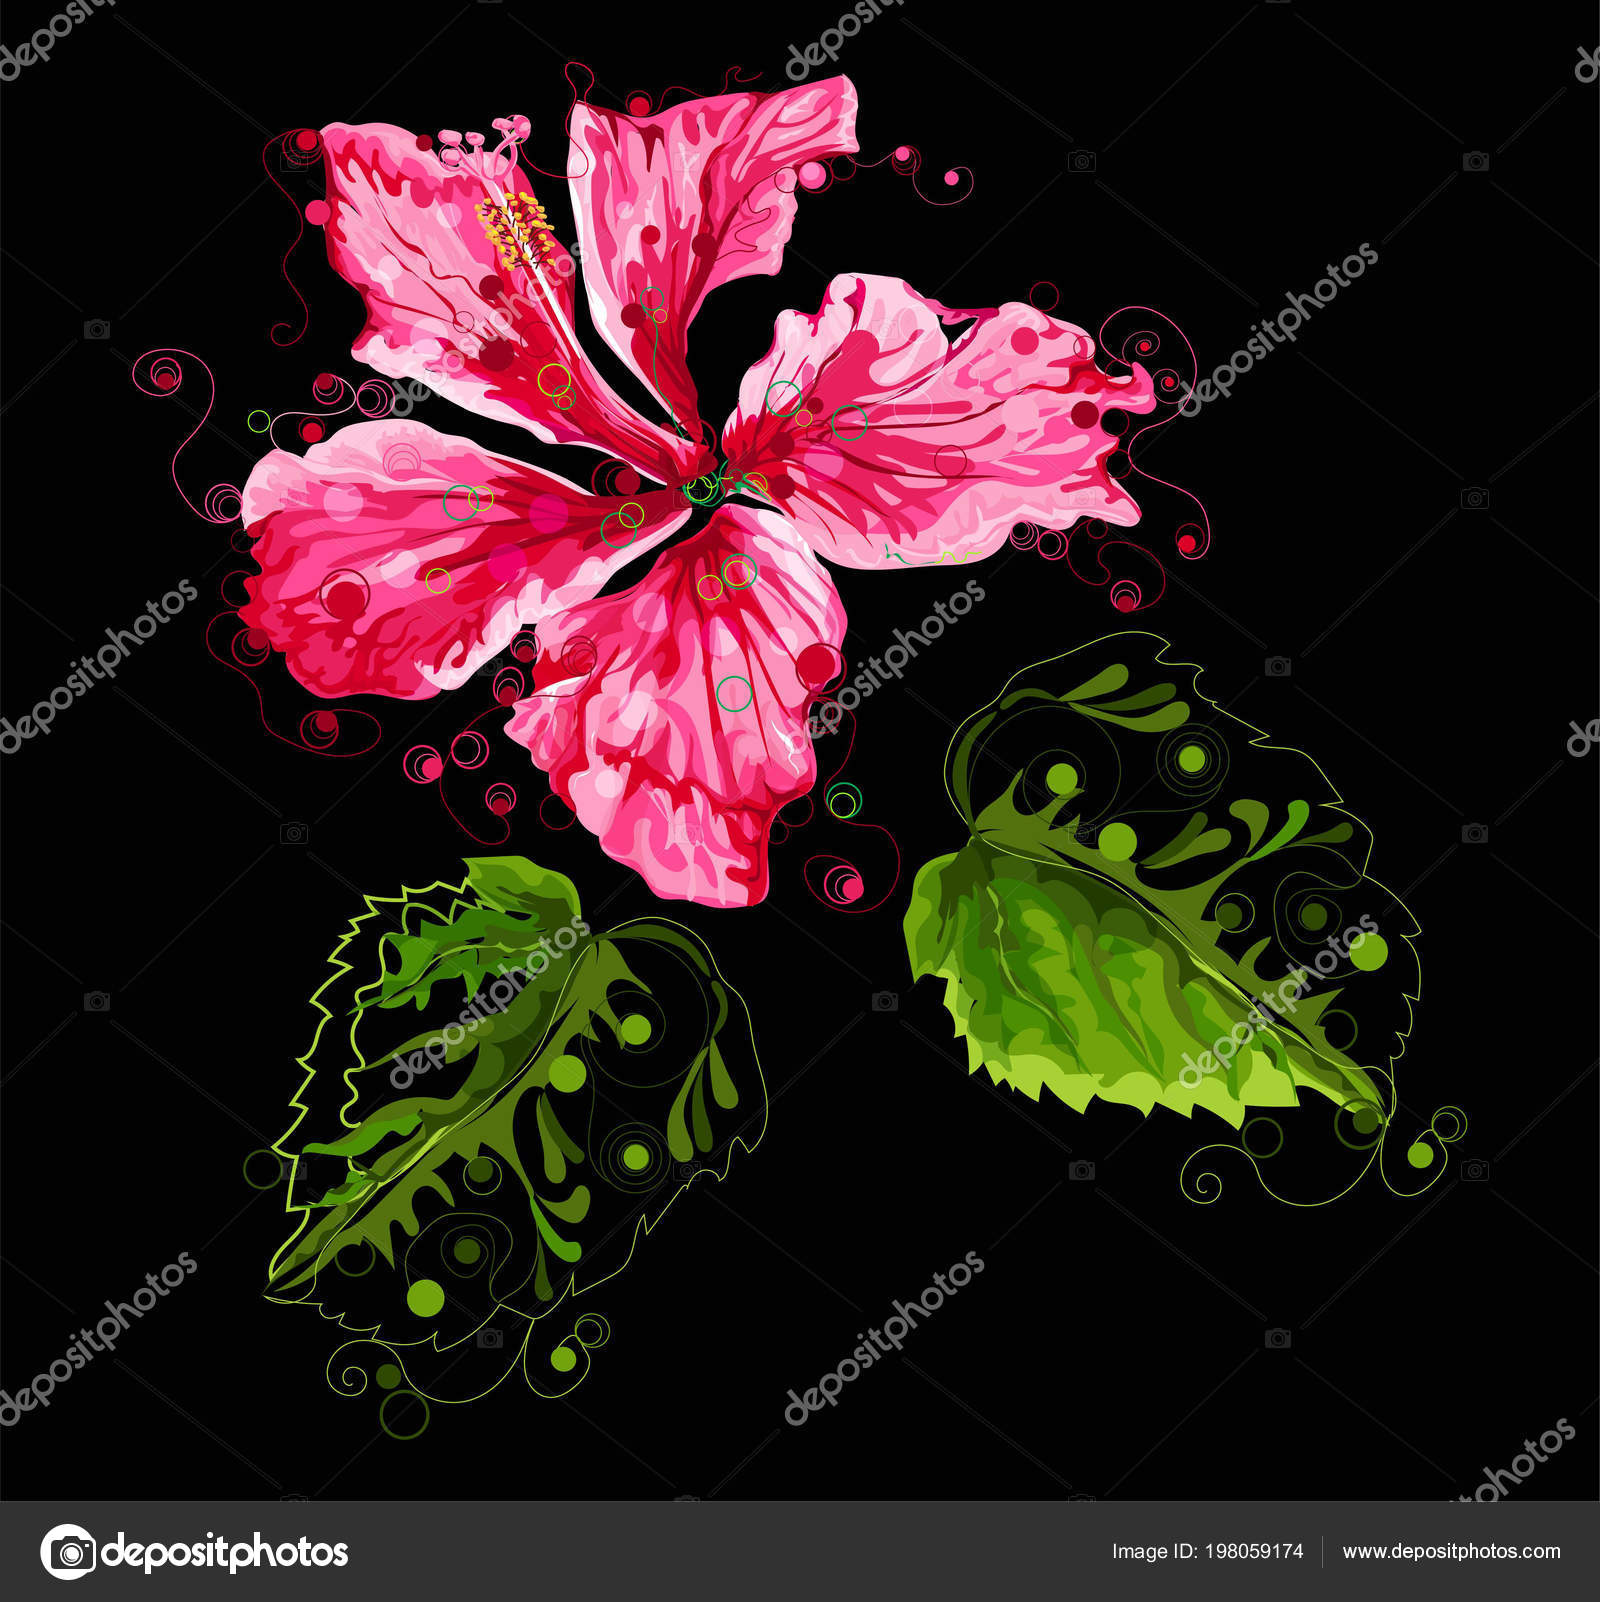 Abstract Hibiscus Flower Black Background Vector Illustration